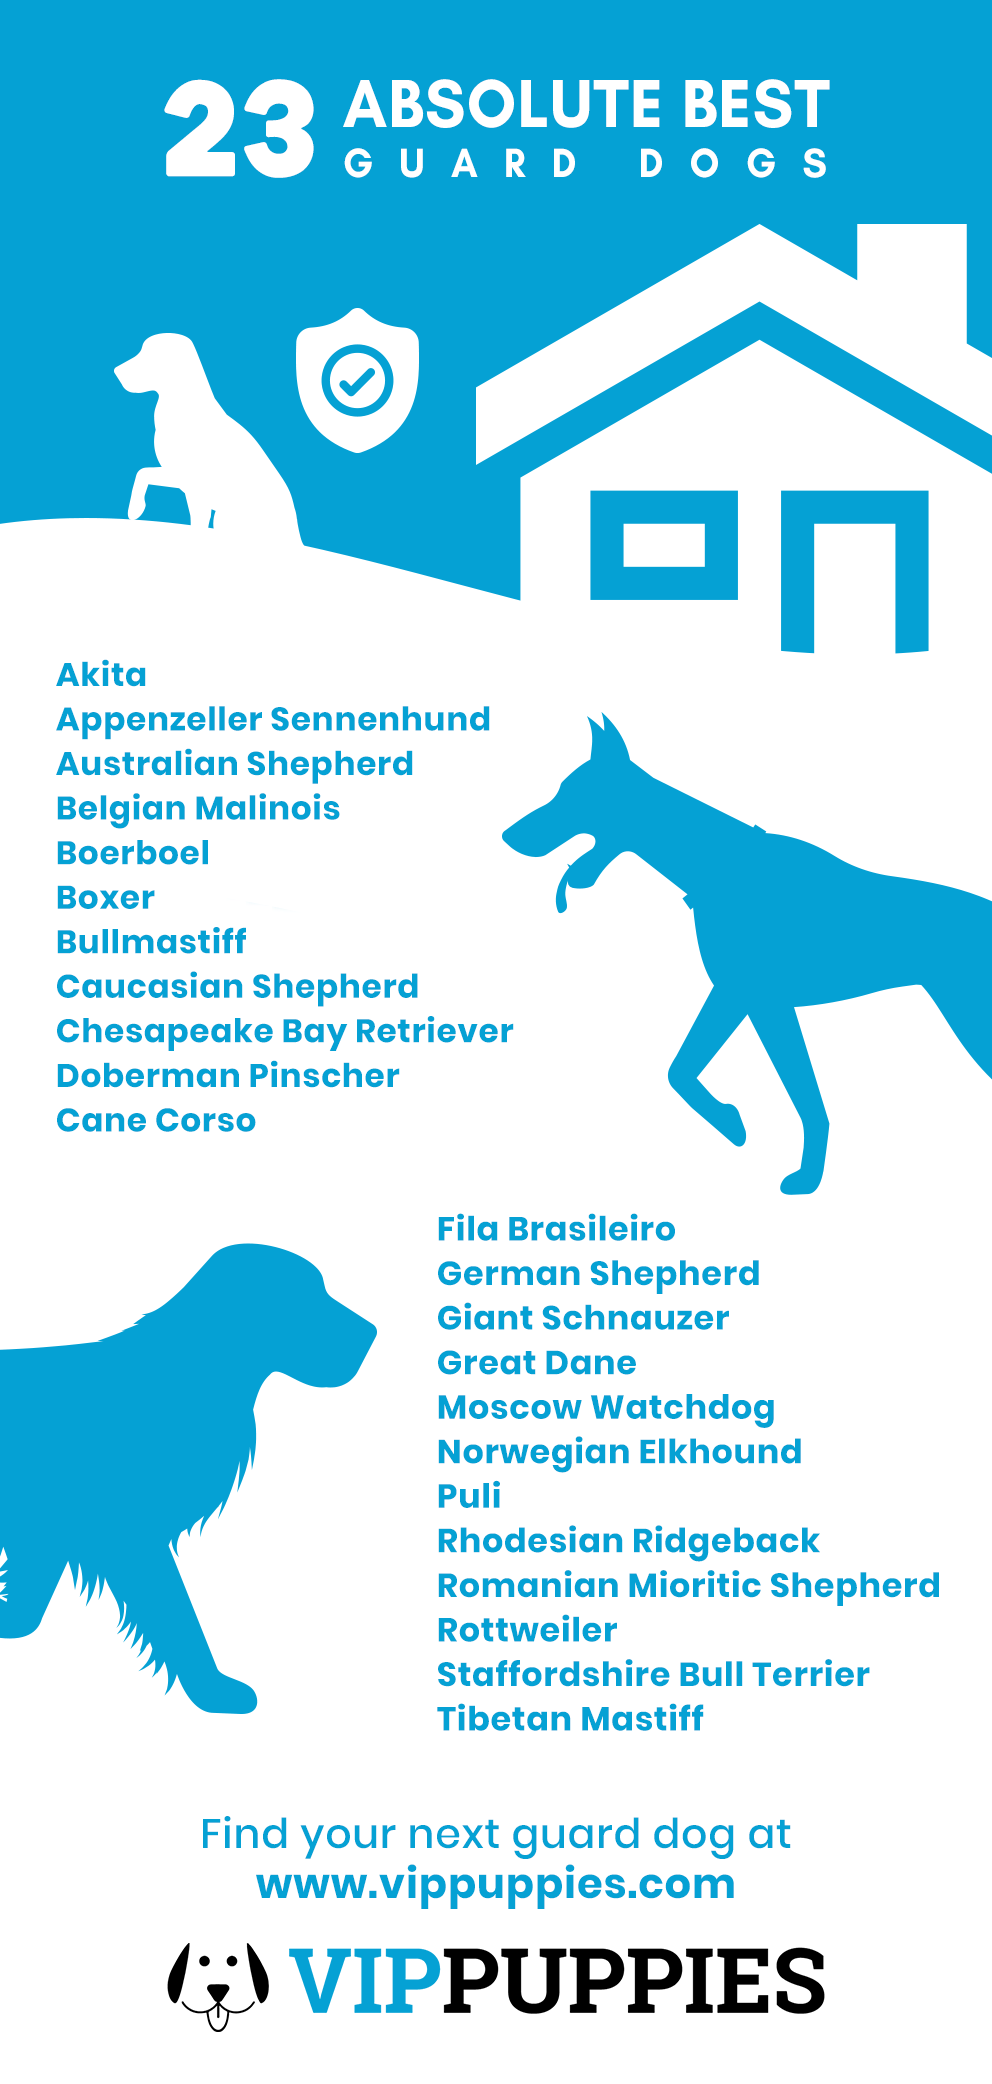 The 23 absolute best guard dogs infographic